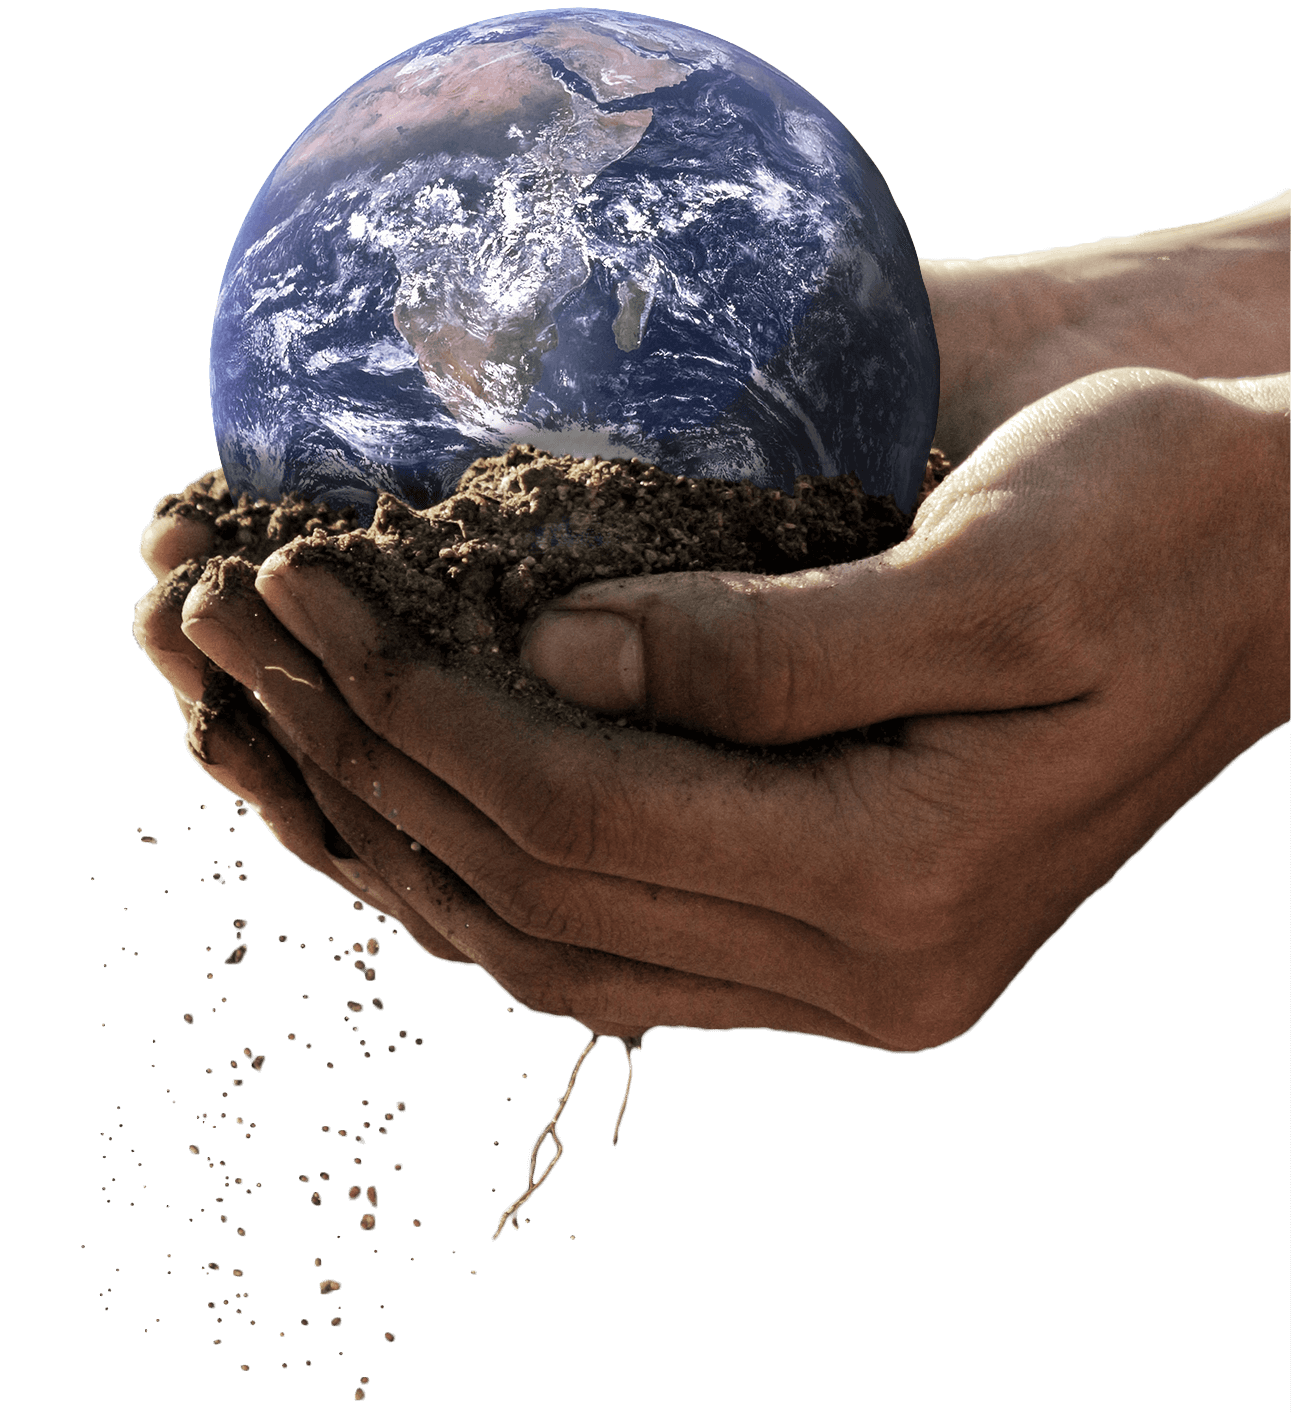 The earth being held by two hands